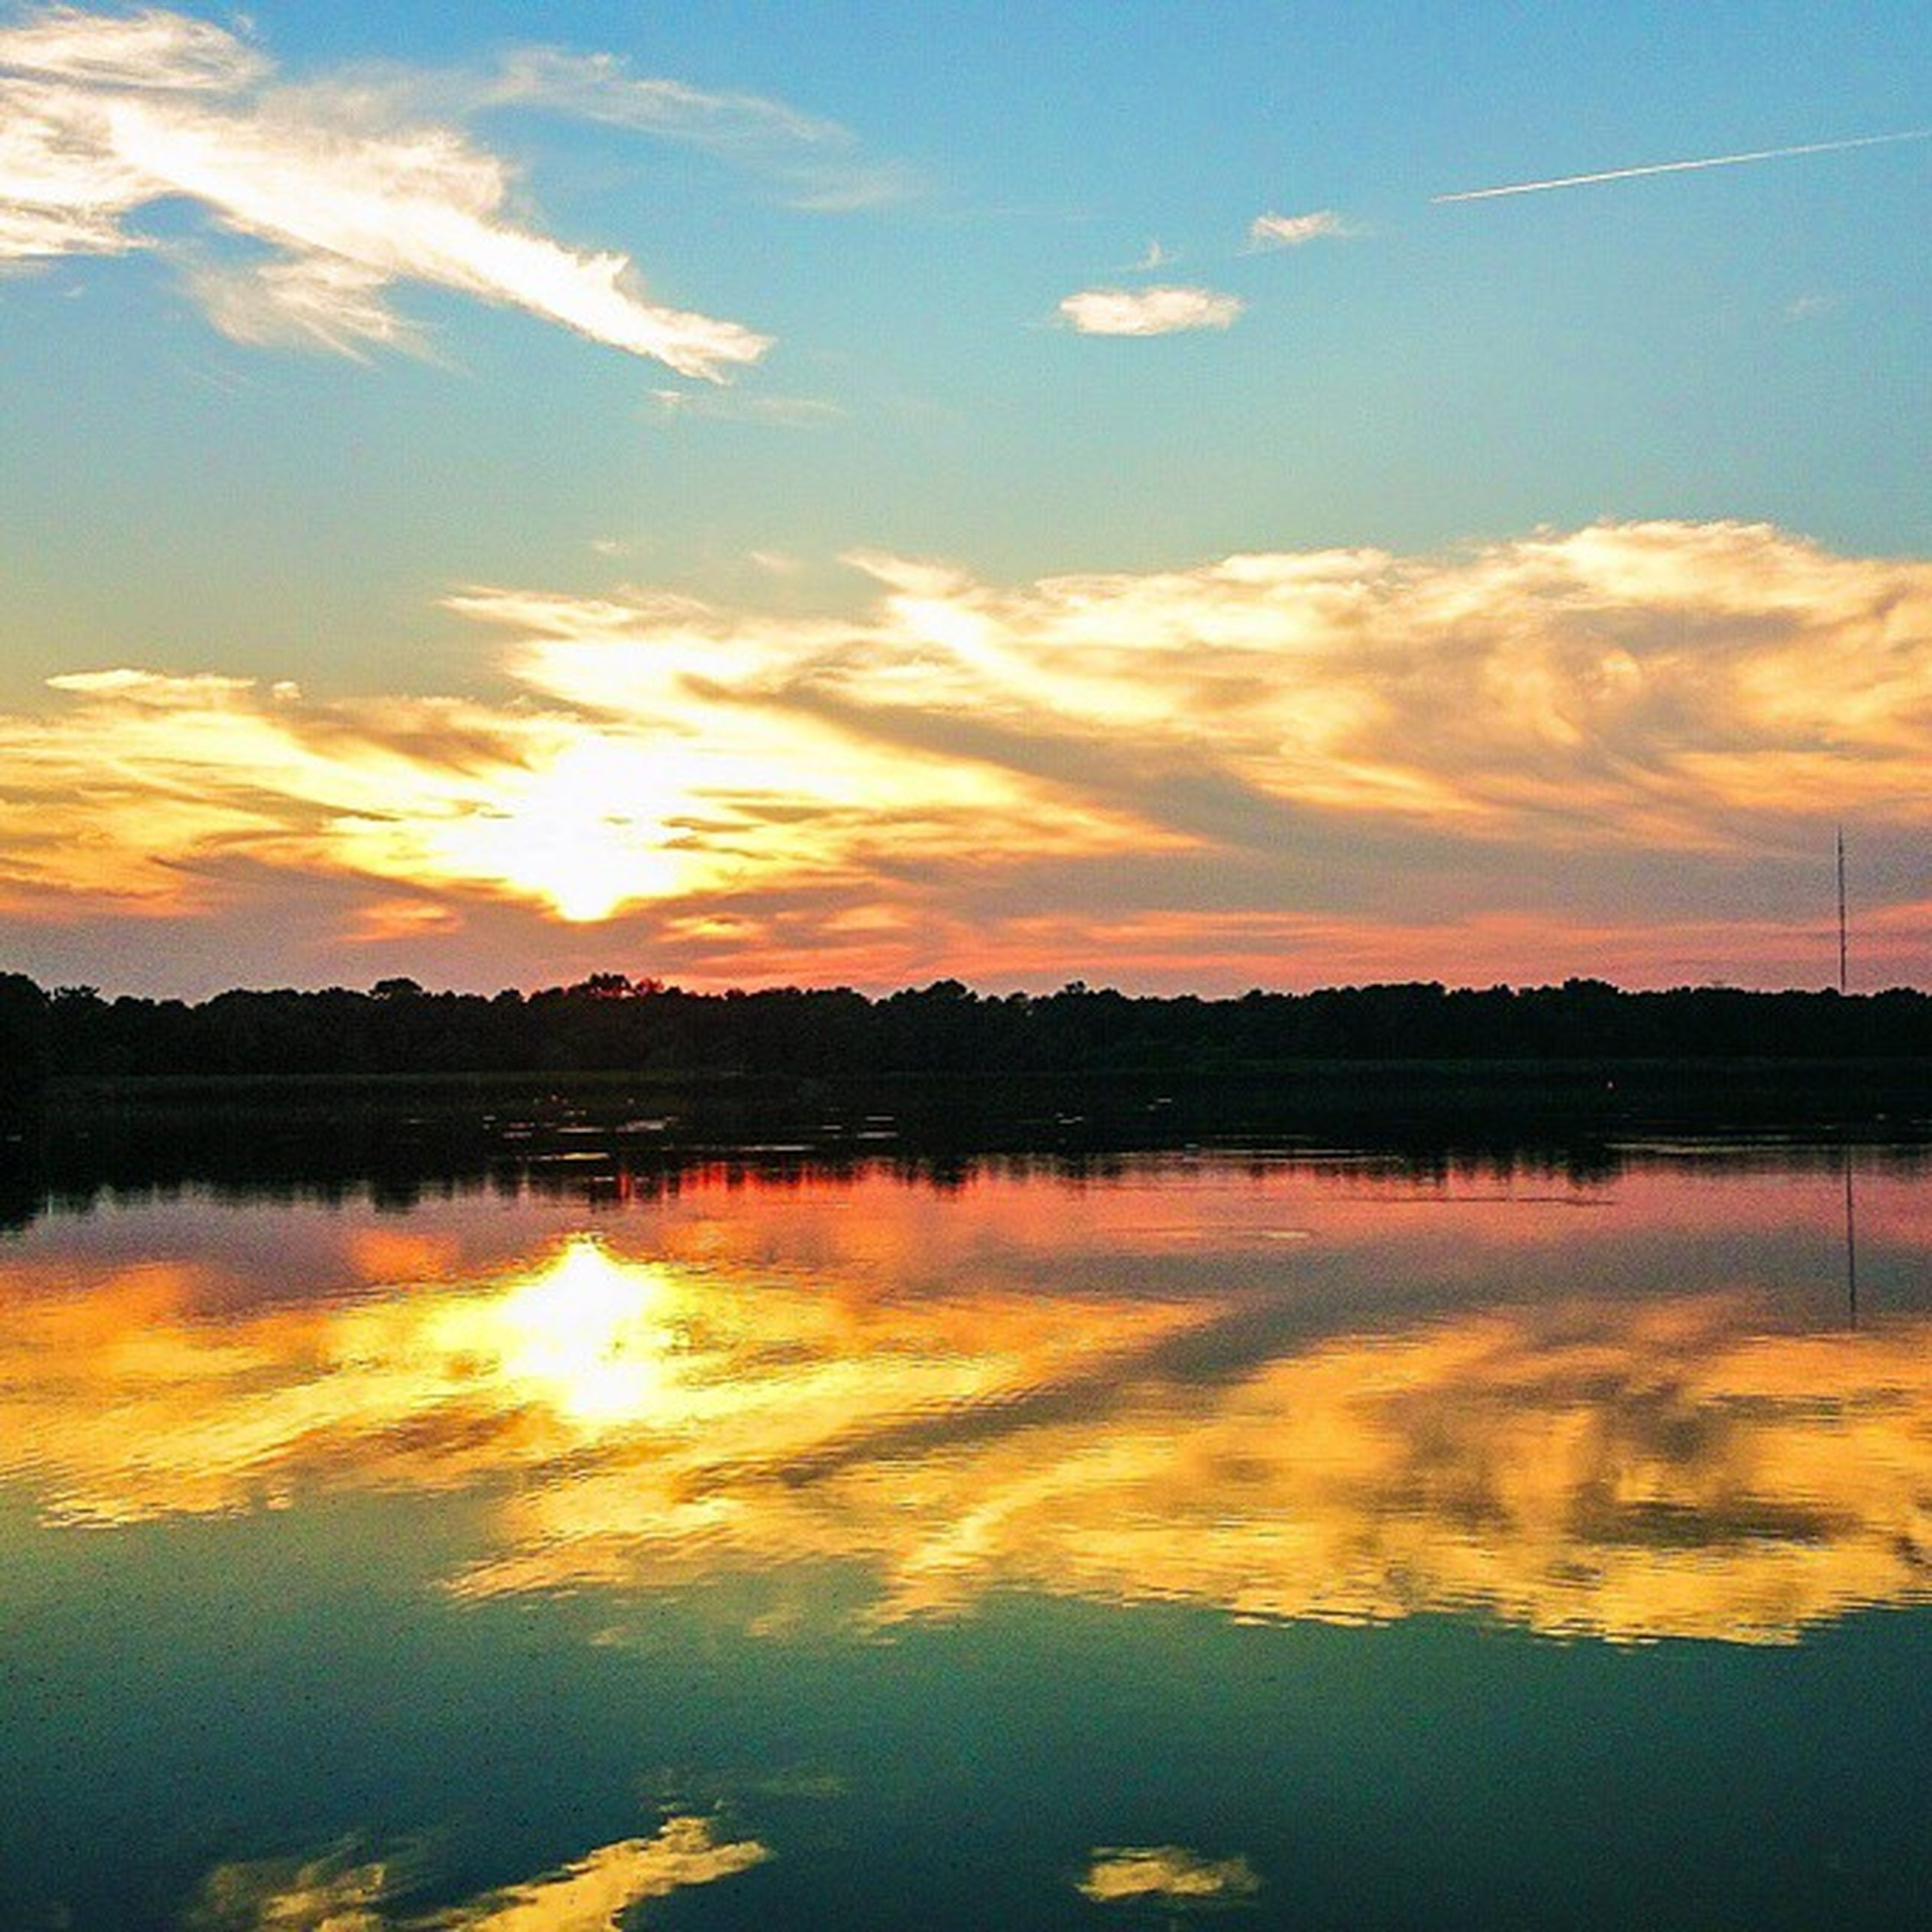 sunset, reflection, water, lake, tranquil scene, scenics, tranquility, sky, beauty in nature, orange color, waterfront, idyllic, silhouette, cloud - sky, nature, standing water, cloud, calm, river, outdoors